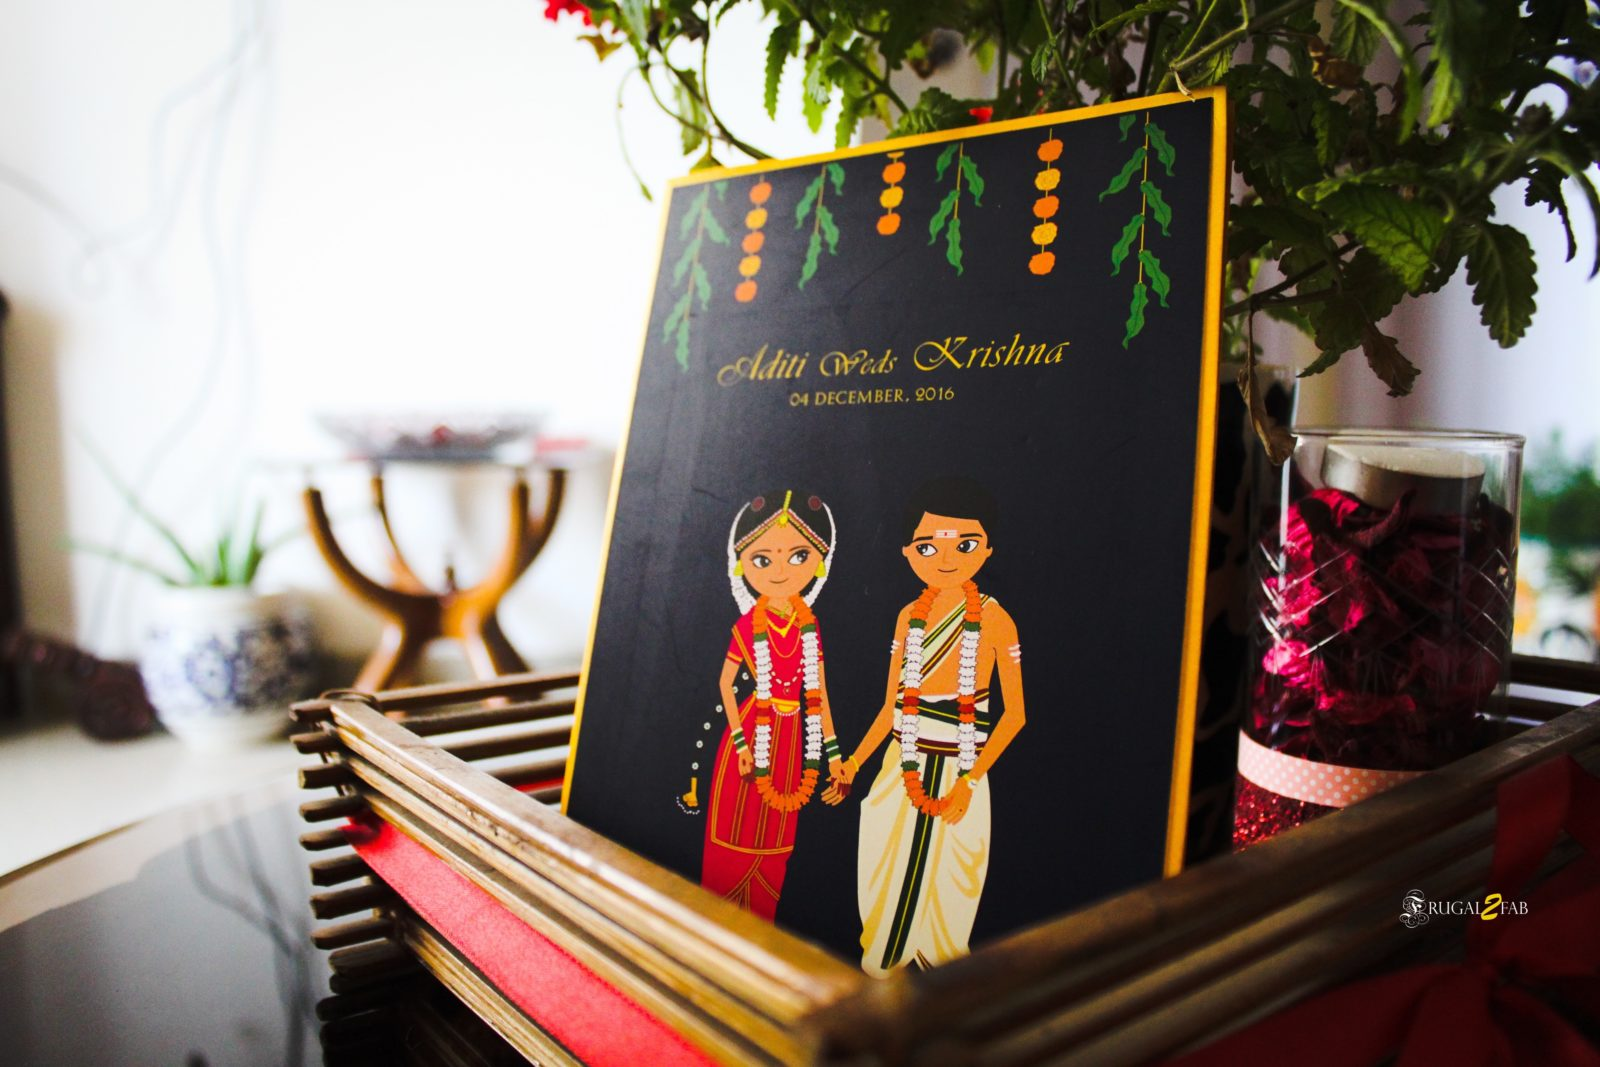 wedding invitation, wedding printing, rajasthan, India, WEDDING INVITATION, WEDDING INVITATION IN UDAIPUR